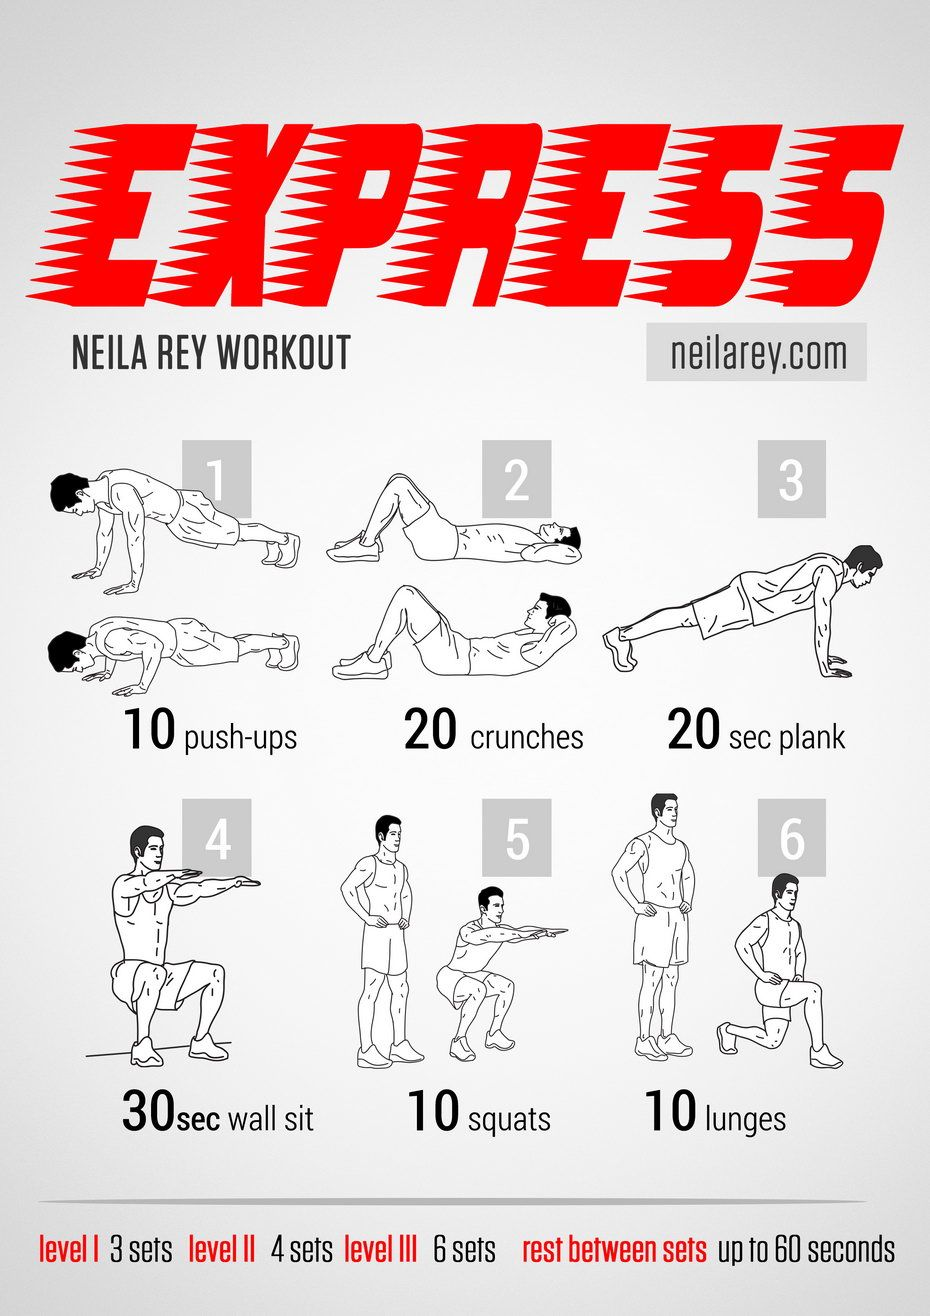 Express Workout Works Chest Triceps Biceps Quads Cardiovascular System Fitness Workoutroutine